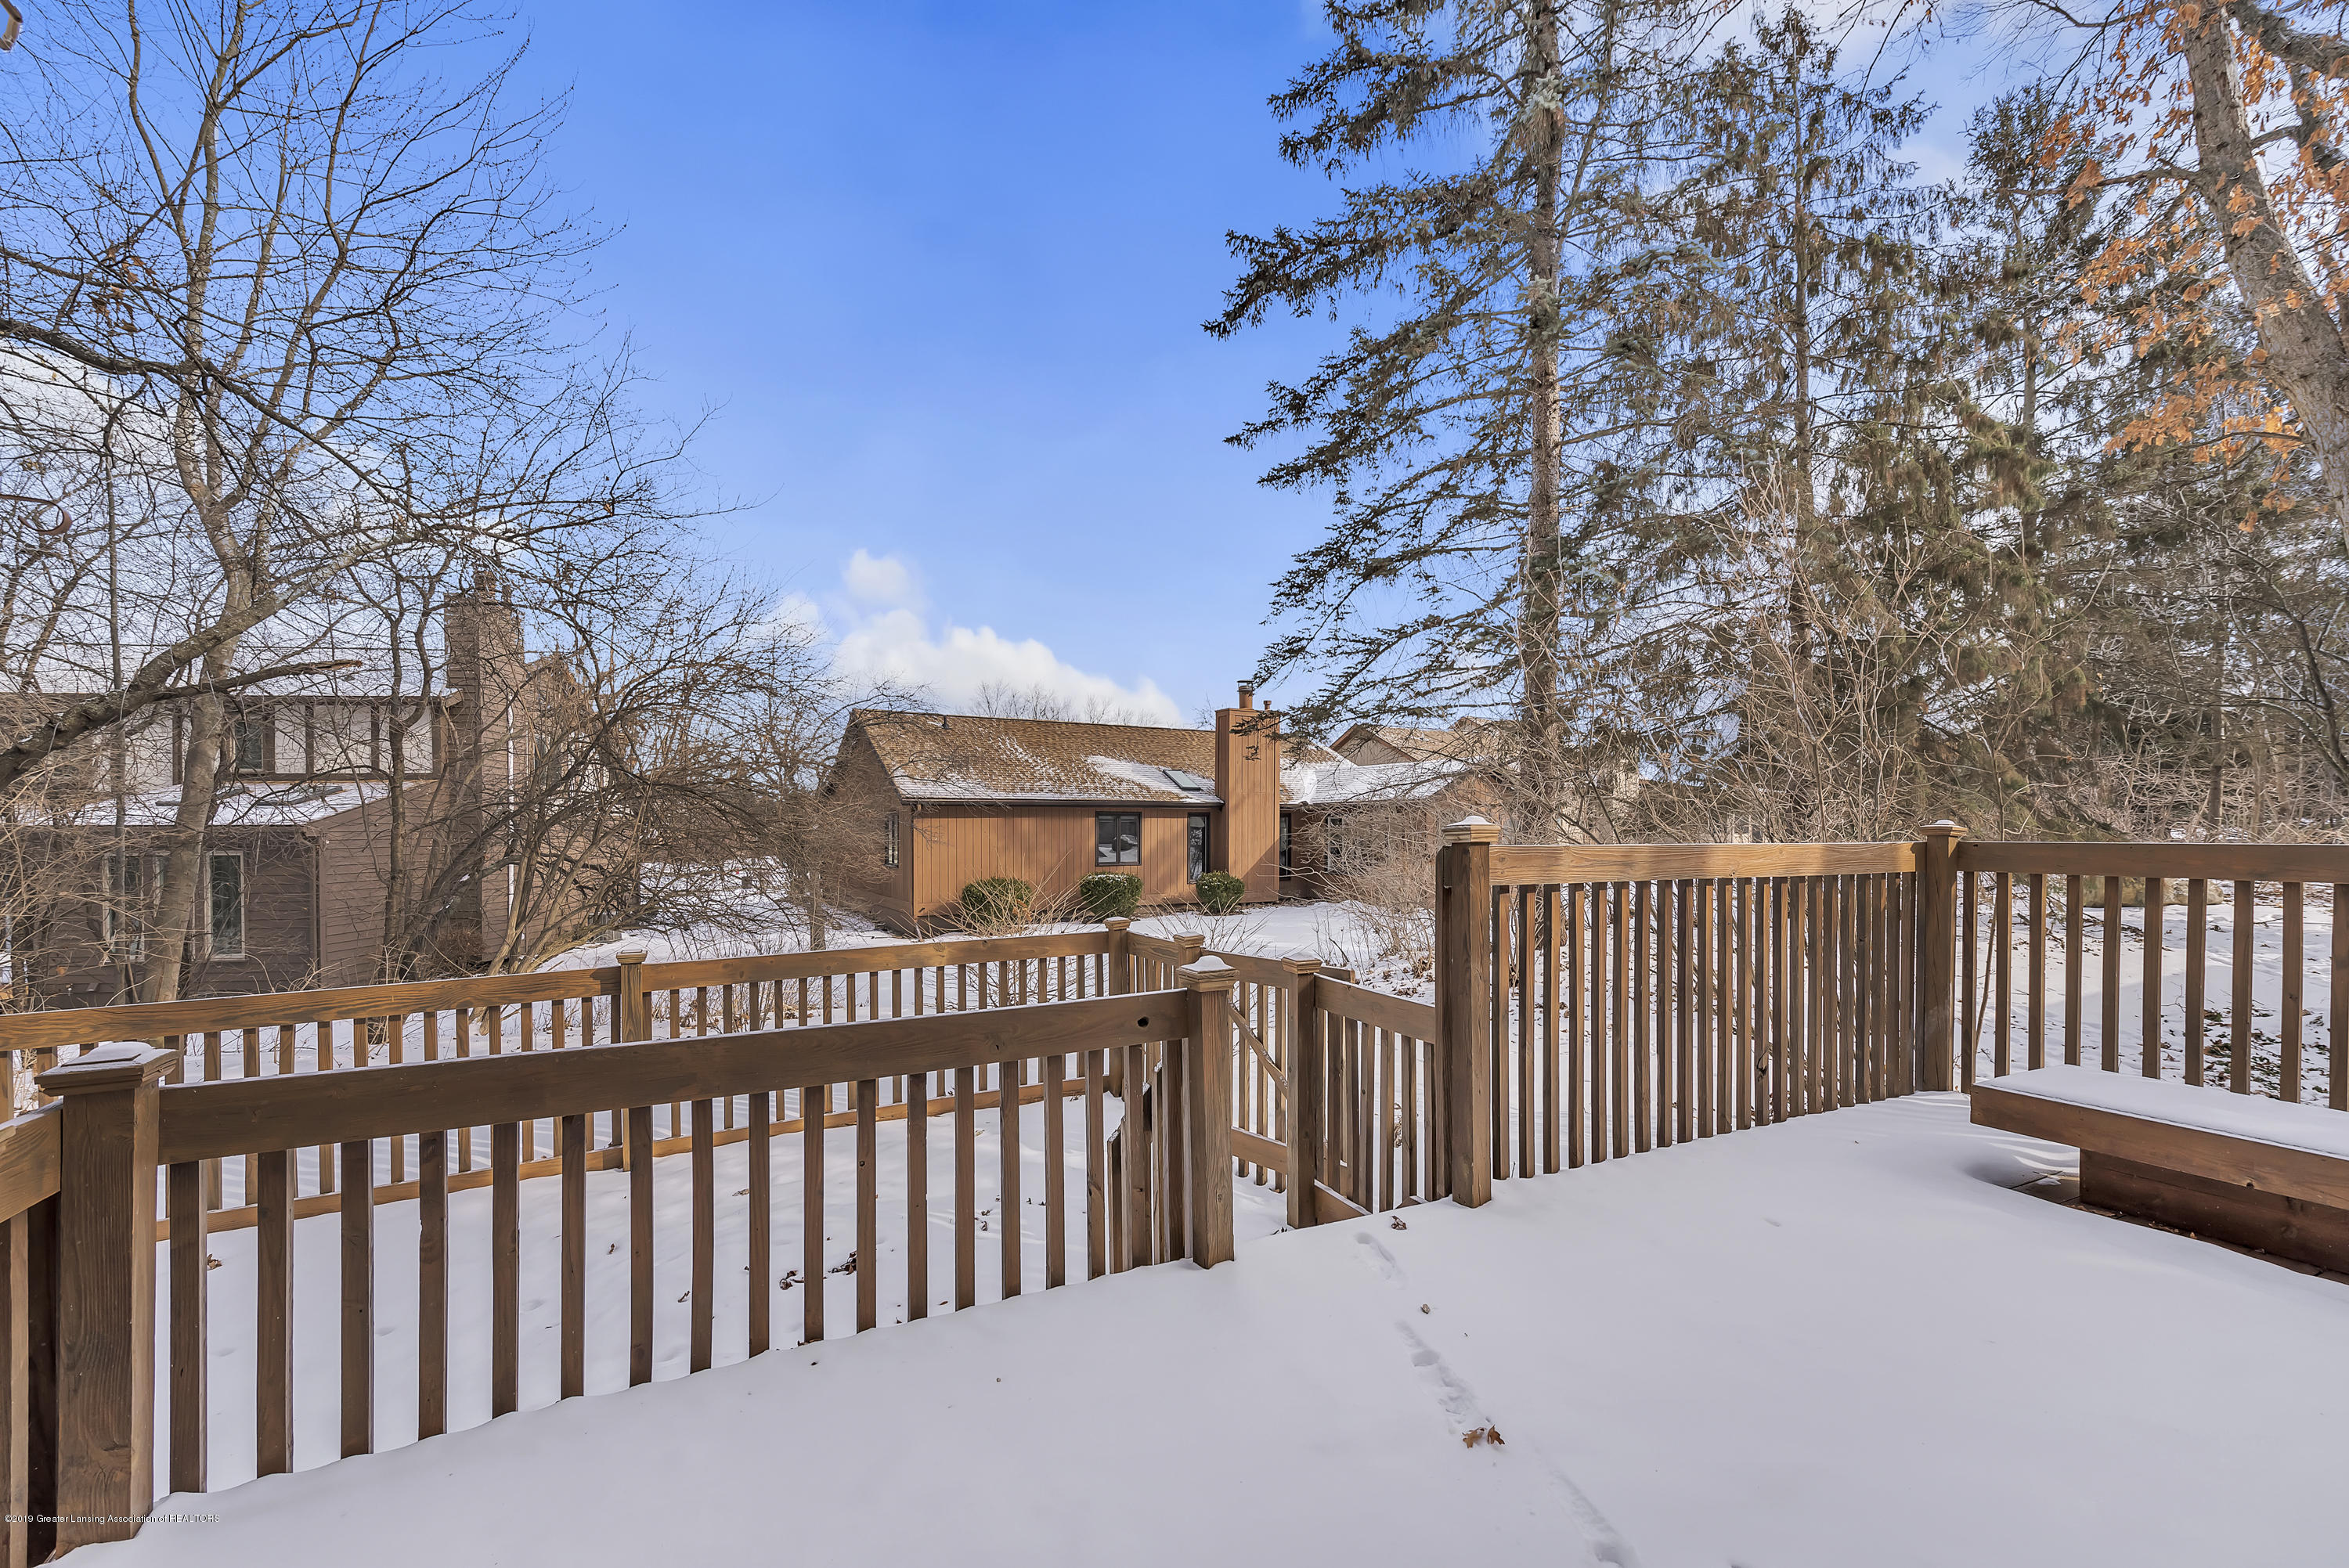 4420 Comanche Dr - Fenced in dog area - 23